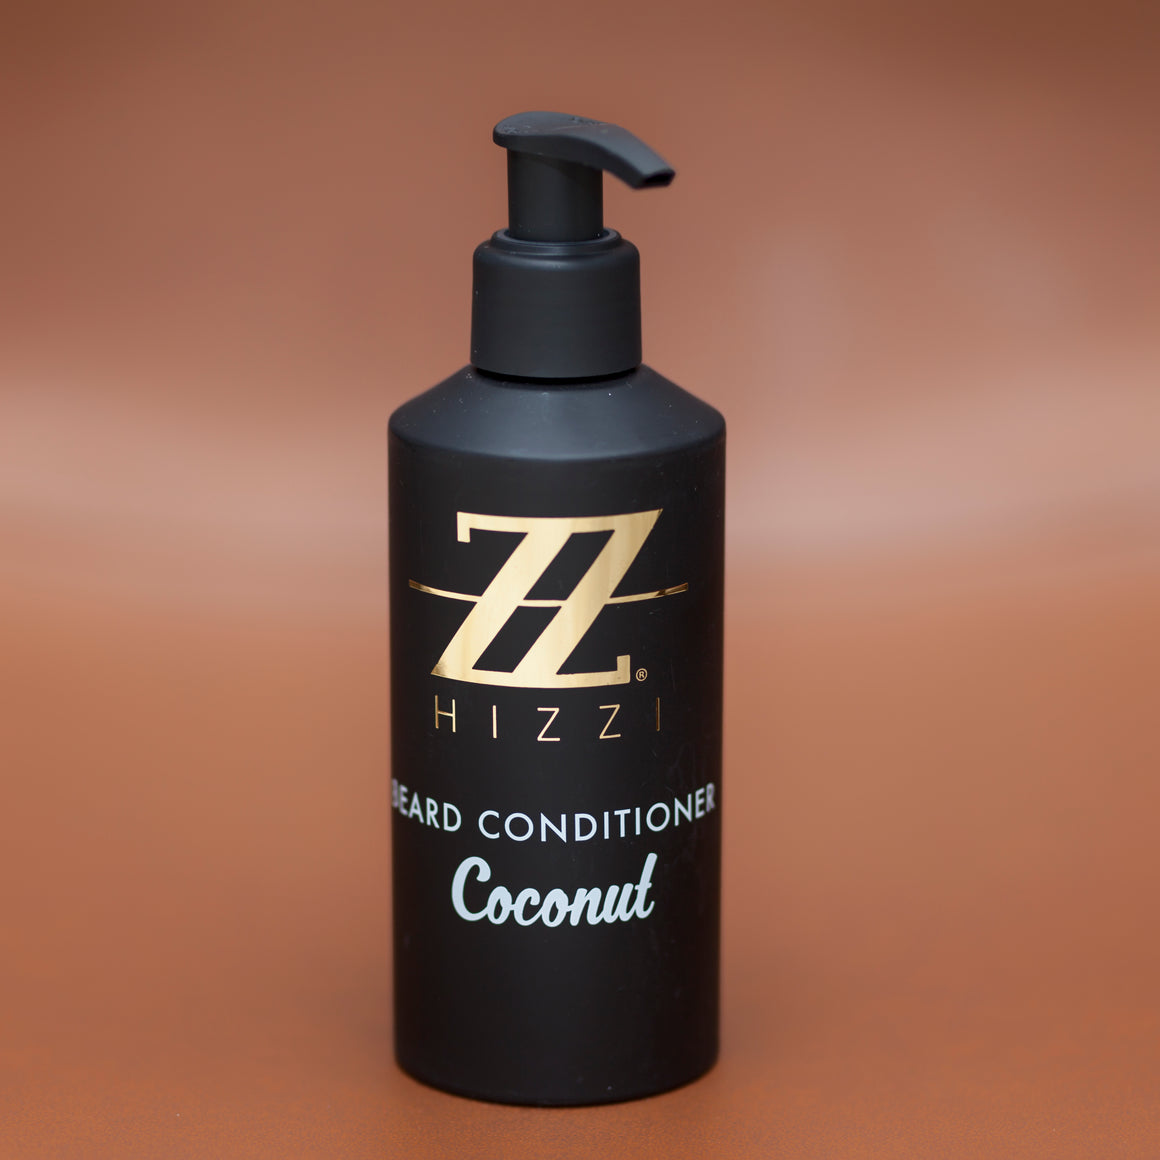 Softening Coconut Beard Conditioner